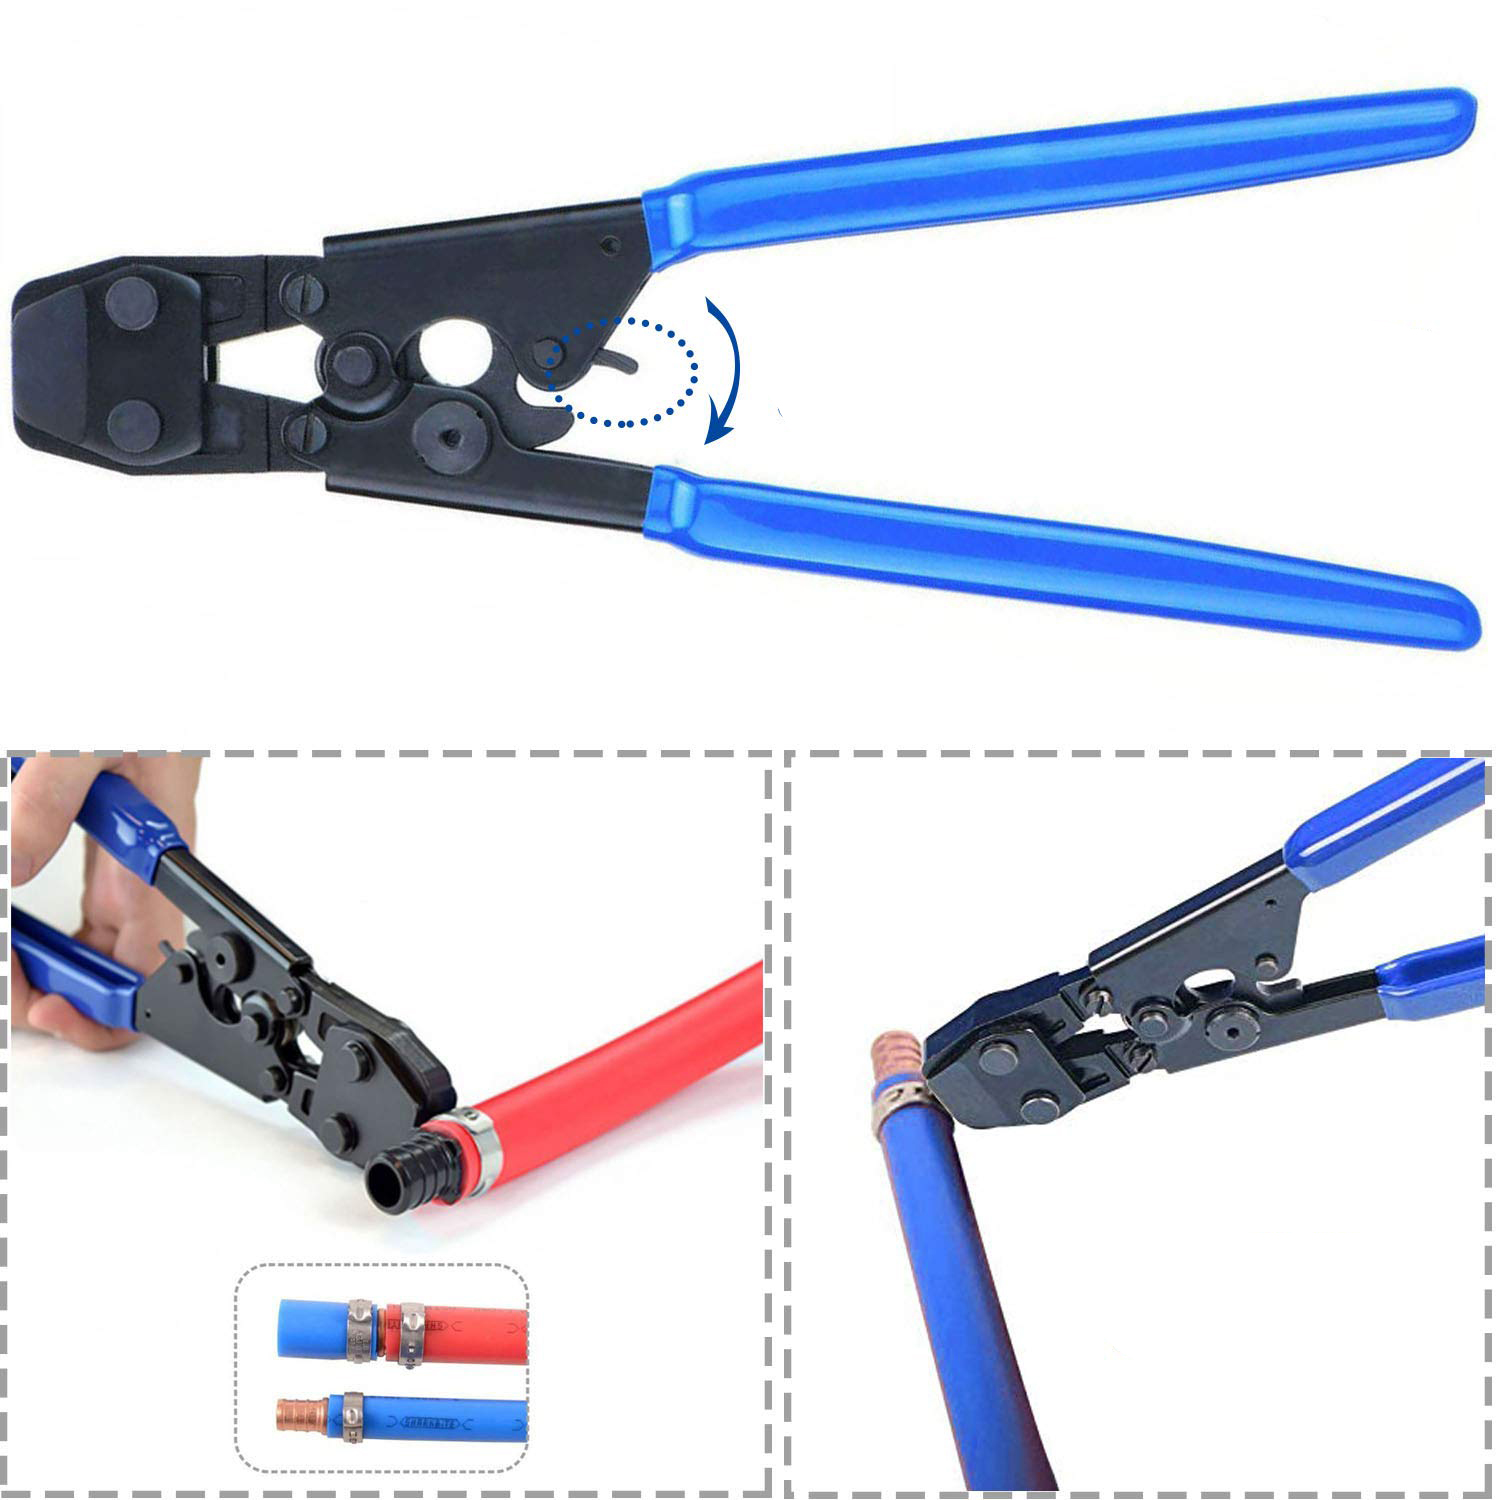 """Zimtown PEX Cinch Clamp Tool, PEX Ratcheting Cinch Crimping Tool Crimper, w/20pcs 1/2"""" and 10 pcs 3/4""""SS PEX Clamps, for Hose Clamps Size 3/8""""1/2"""" 5/8"""" 3/4"""" 1"""", Blue"""